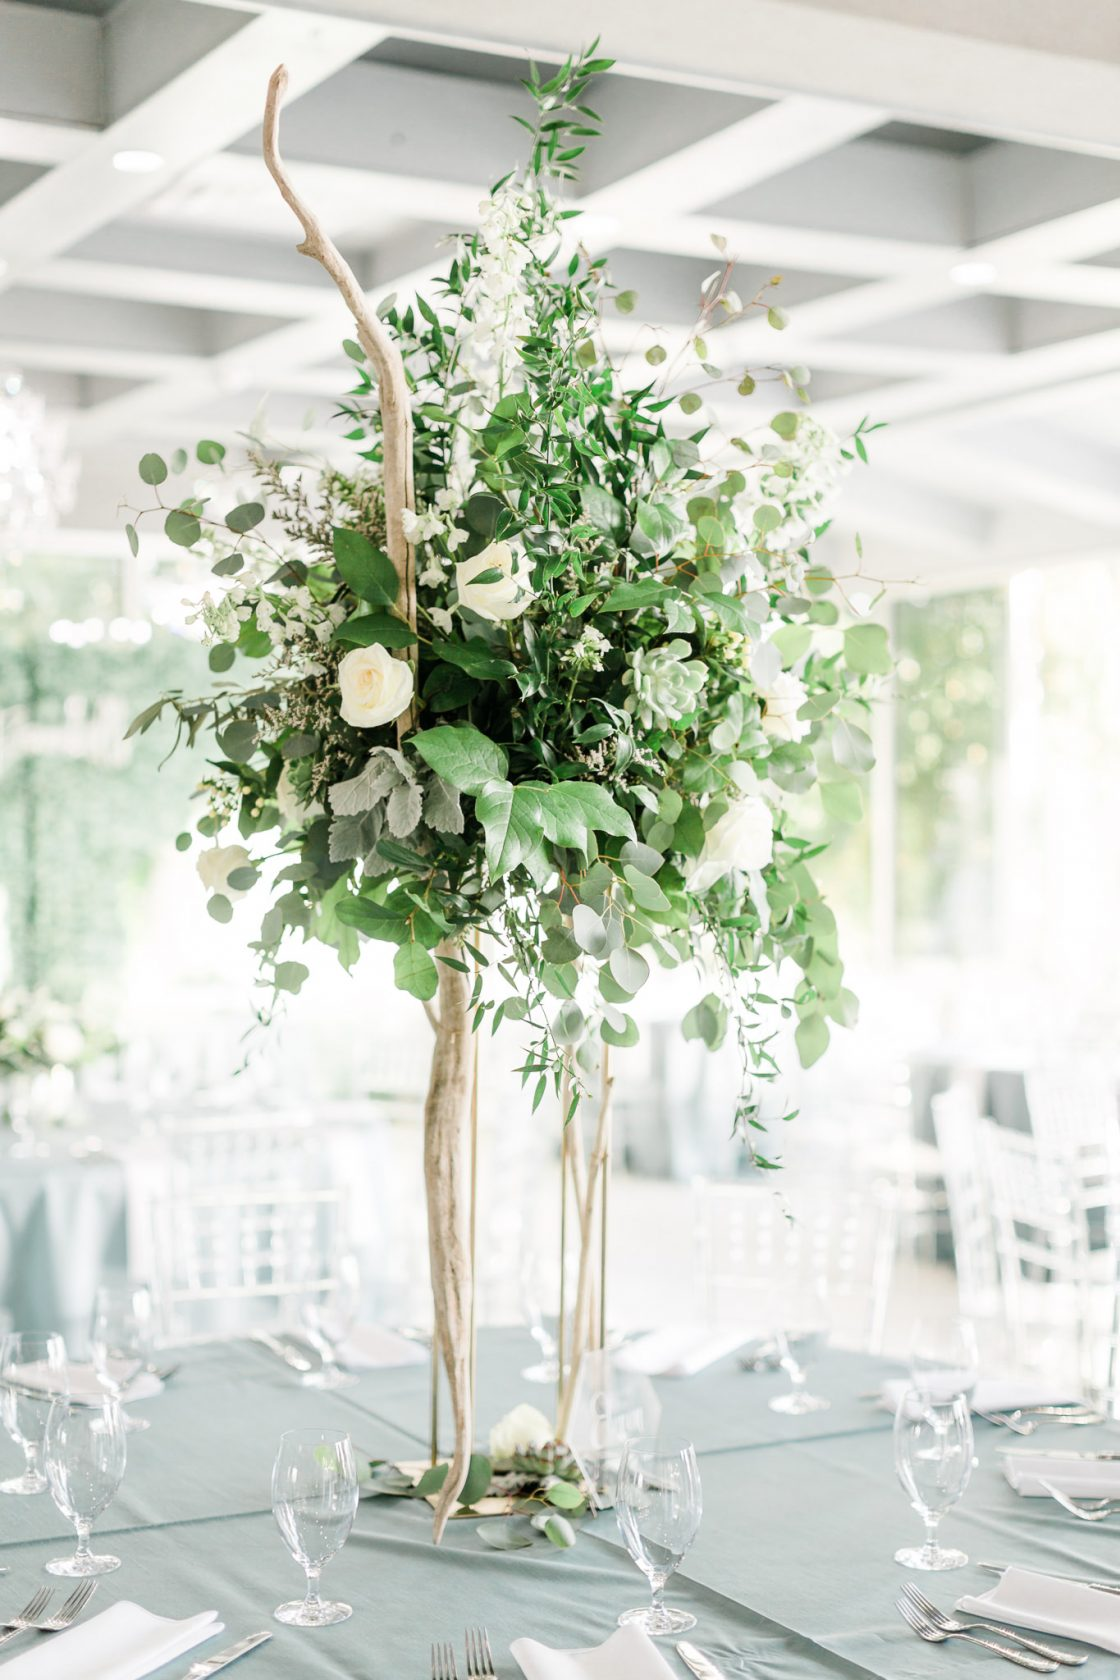 Tall White and Green Coastal Wedding Centerpieace